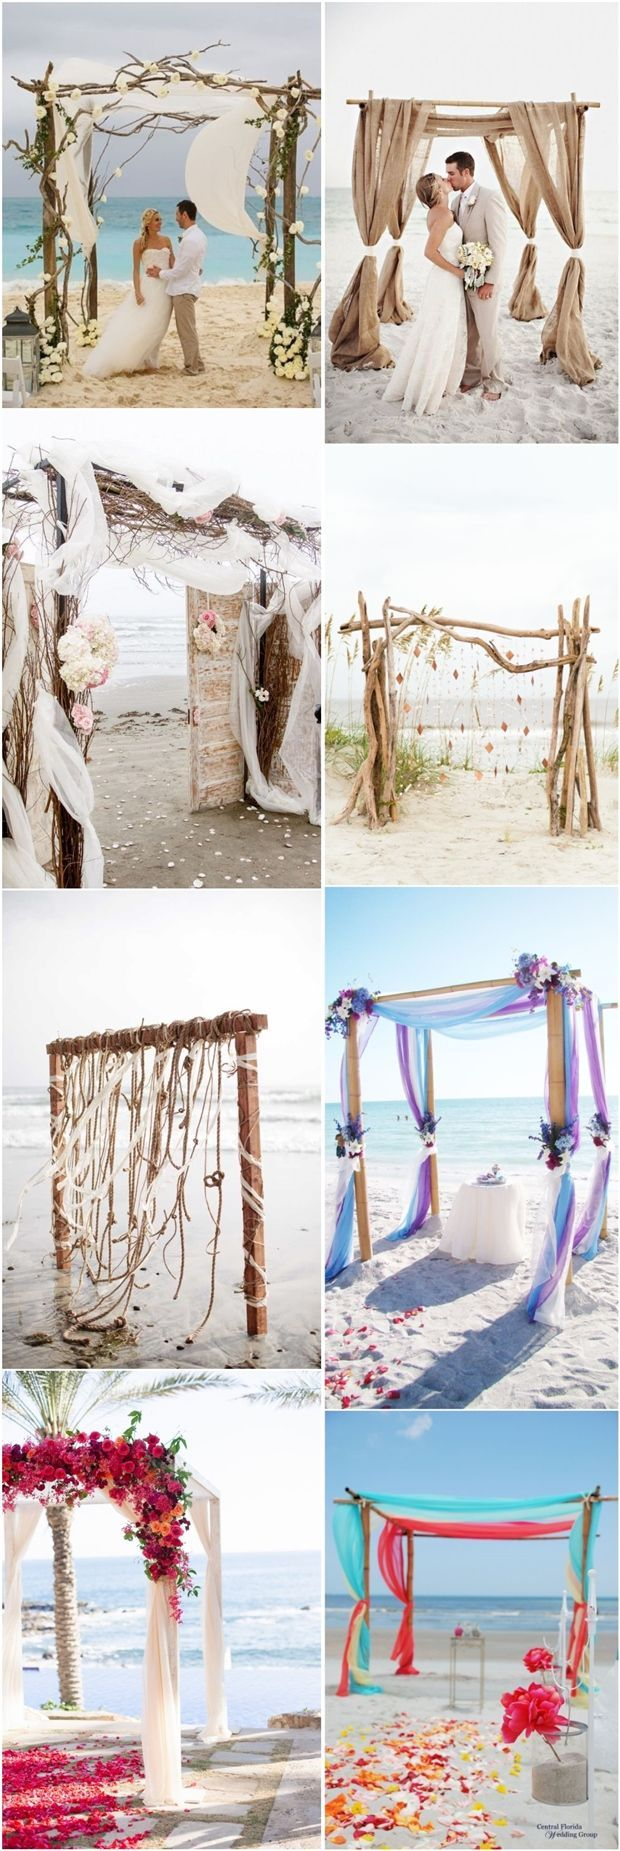 Beach wedding ideas- beach wedding arches decors -   See more at…